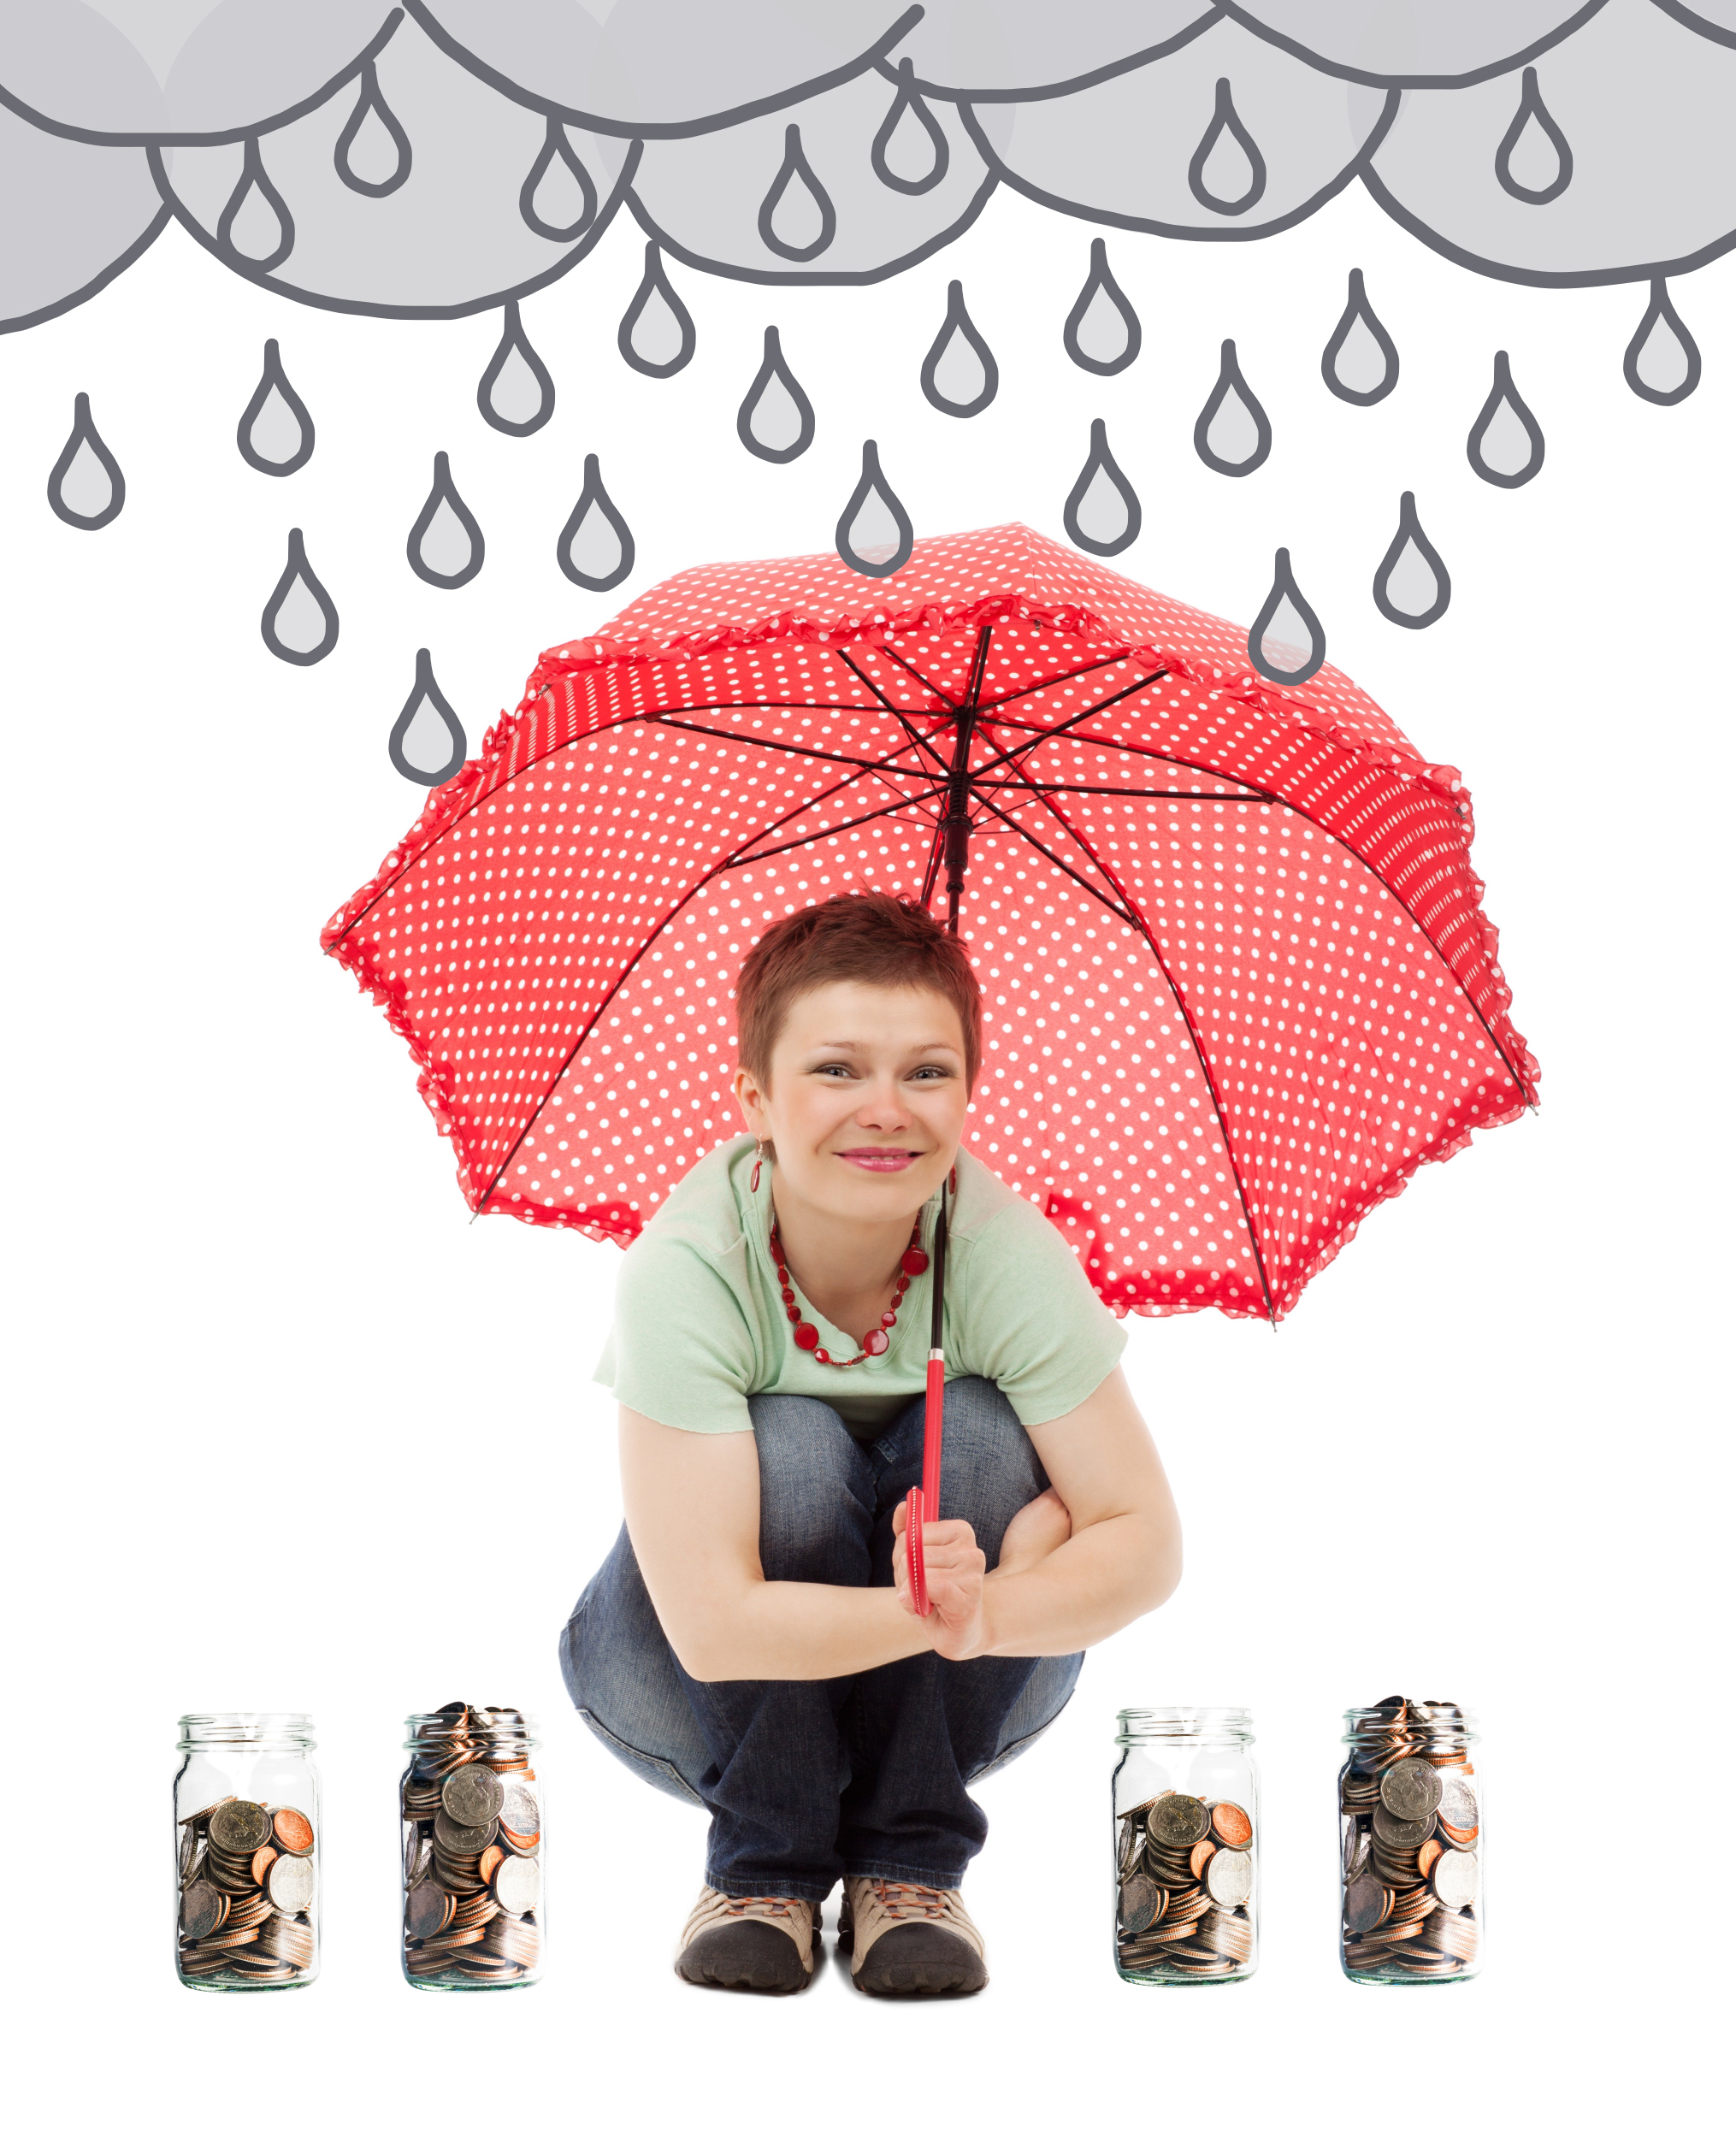 Woman under umbrella while raining surrounded by coin jars